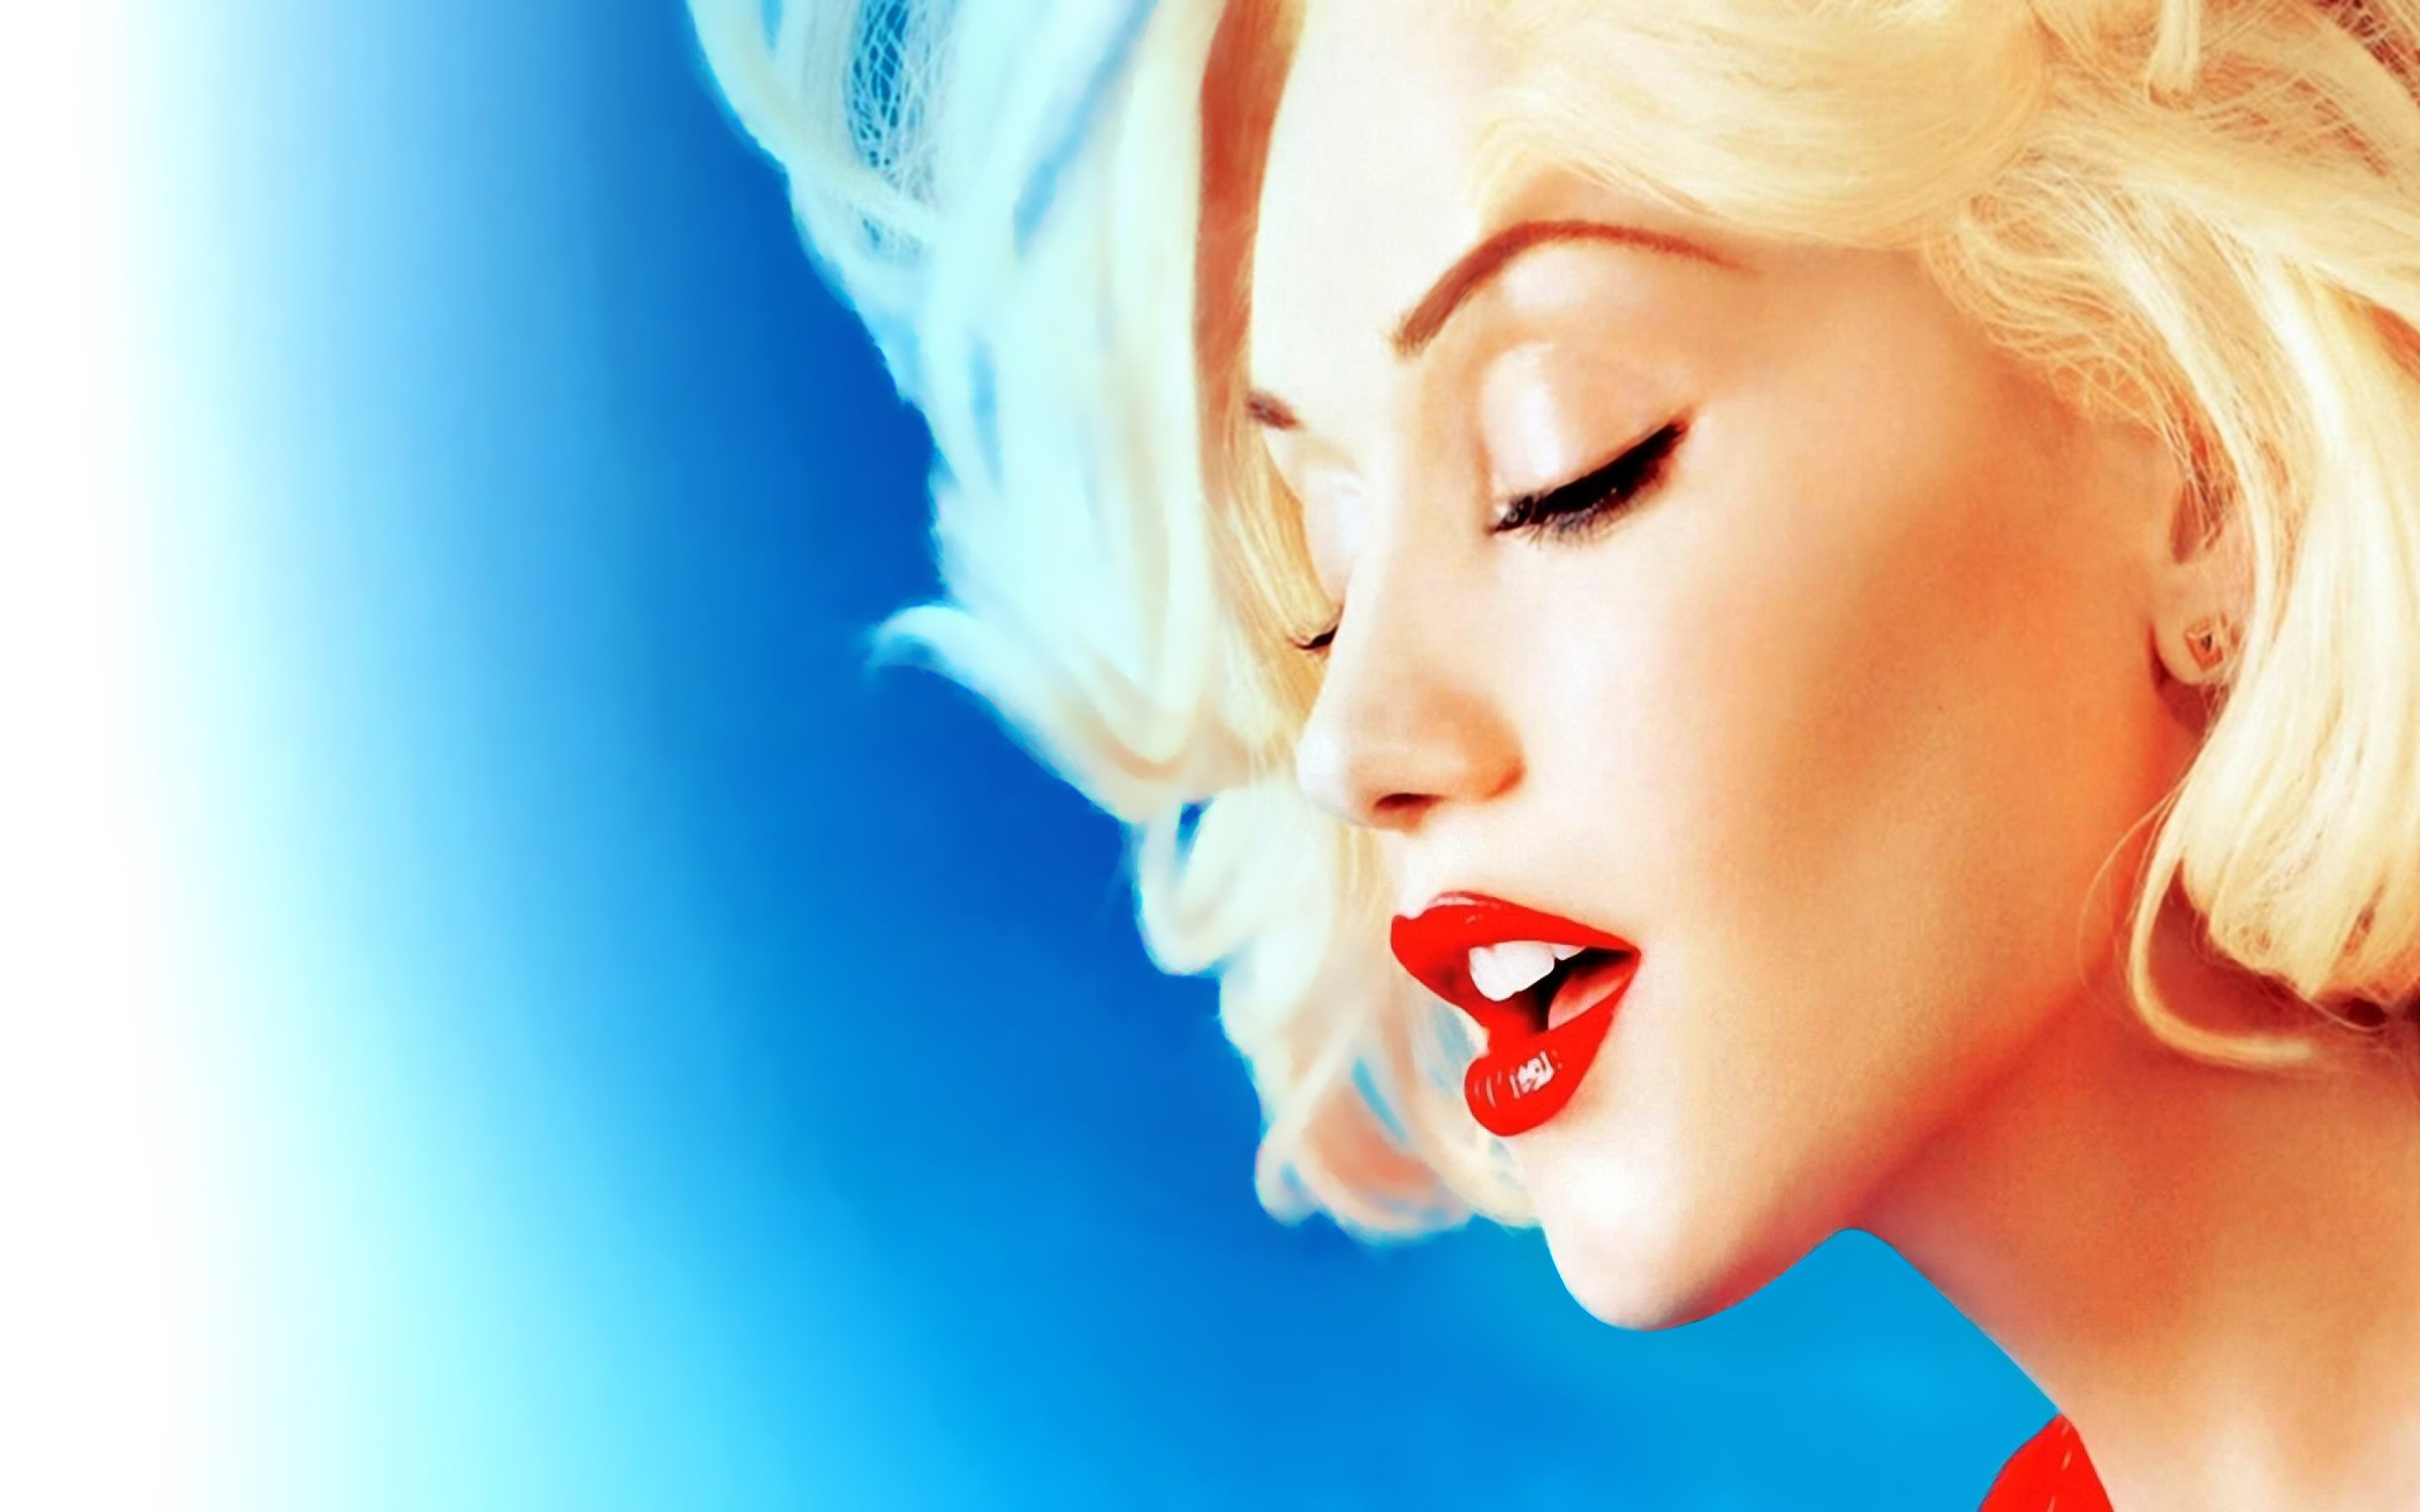 gwen stefani wallpaper cool - photo #1